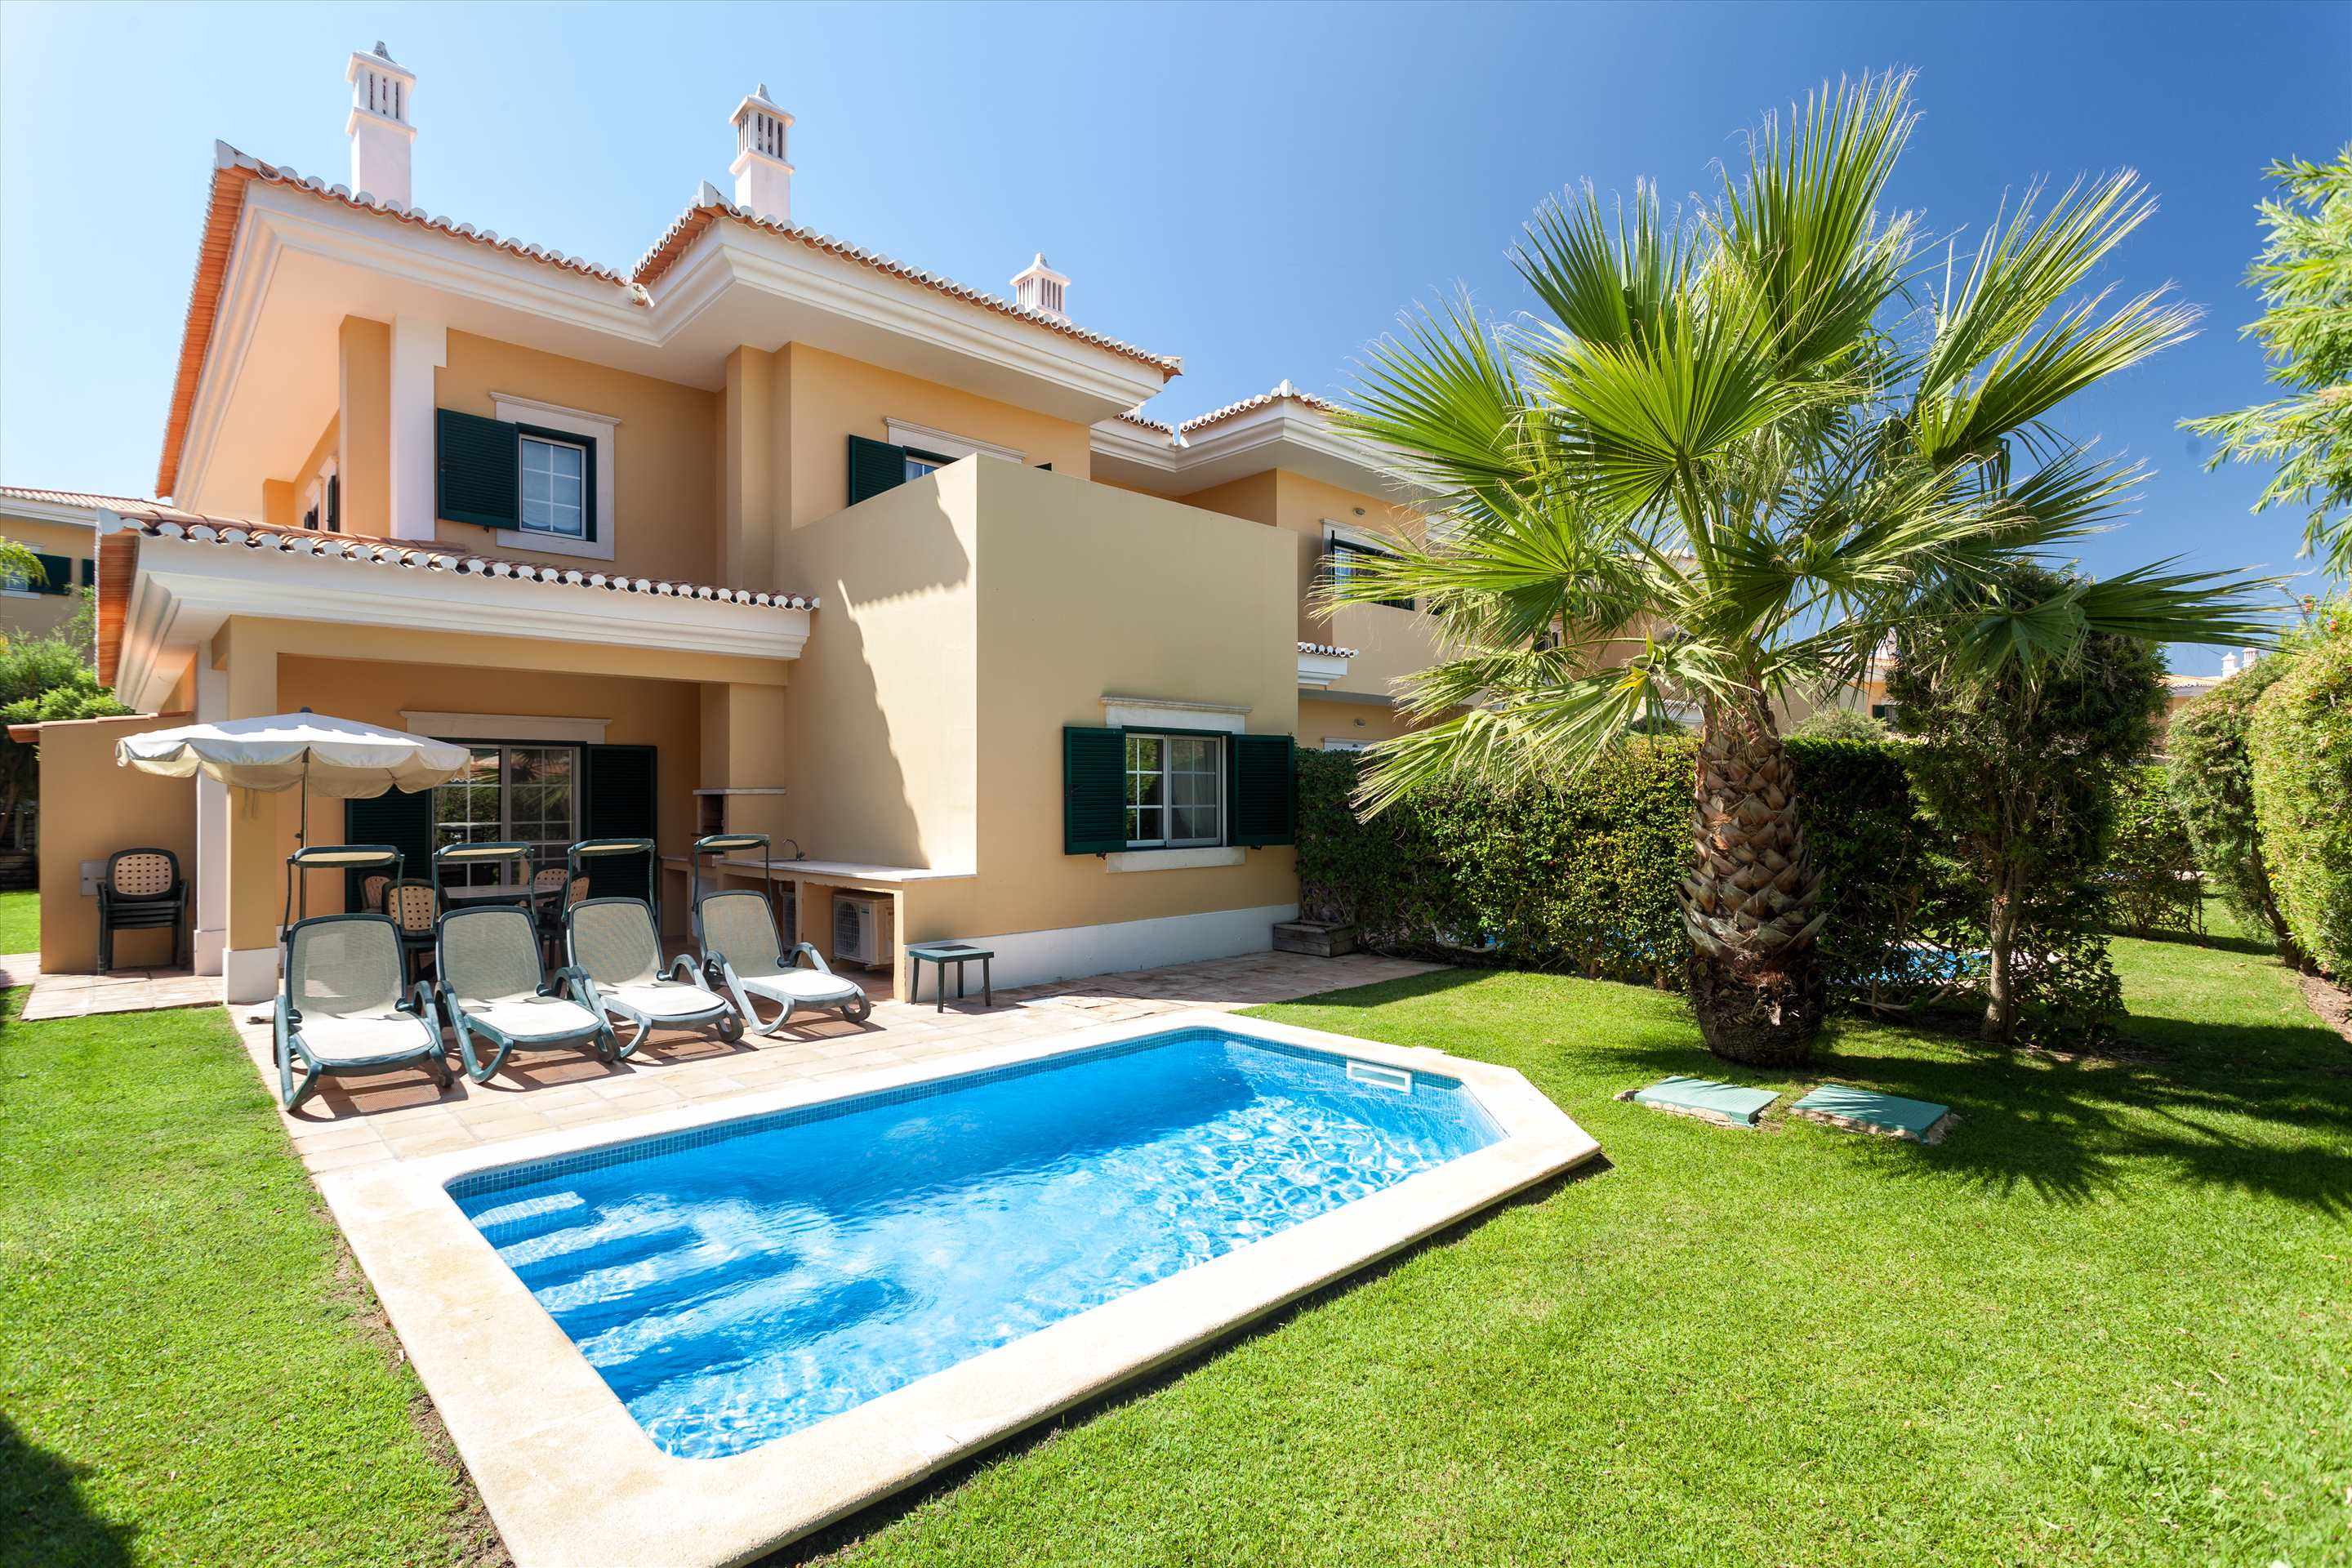 Martinhal Quinta Townhouse (3 Bedroom), 3 bedroom villa in Martinhal Quinta Resort, Algarve Photo #1